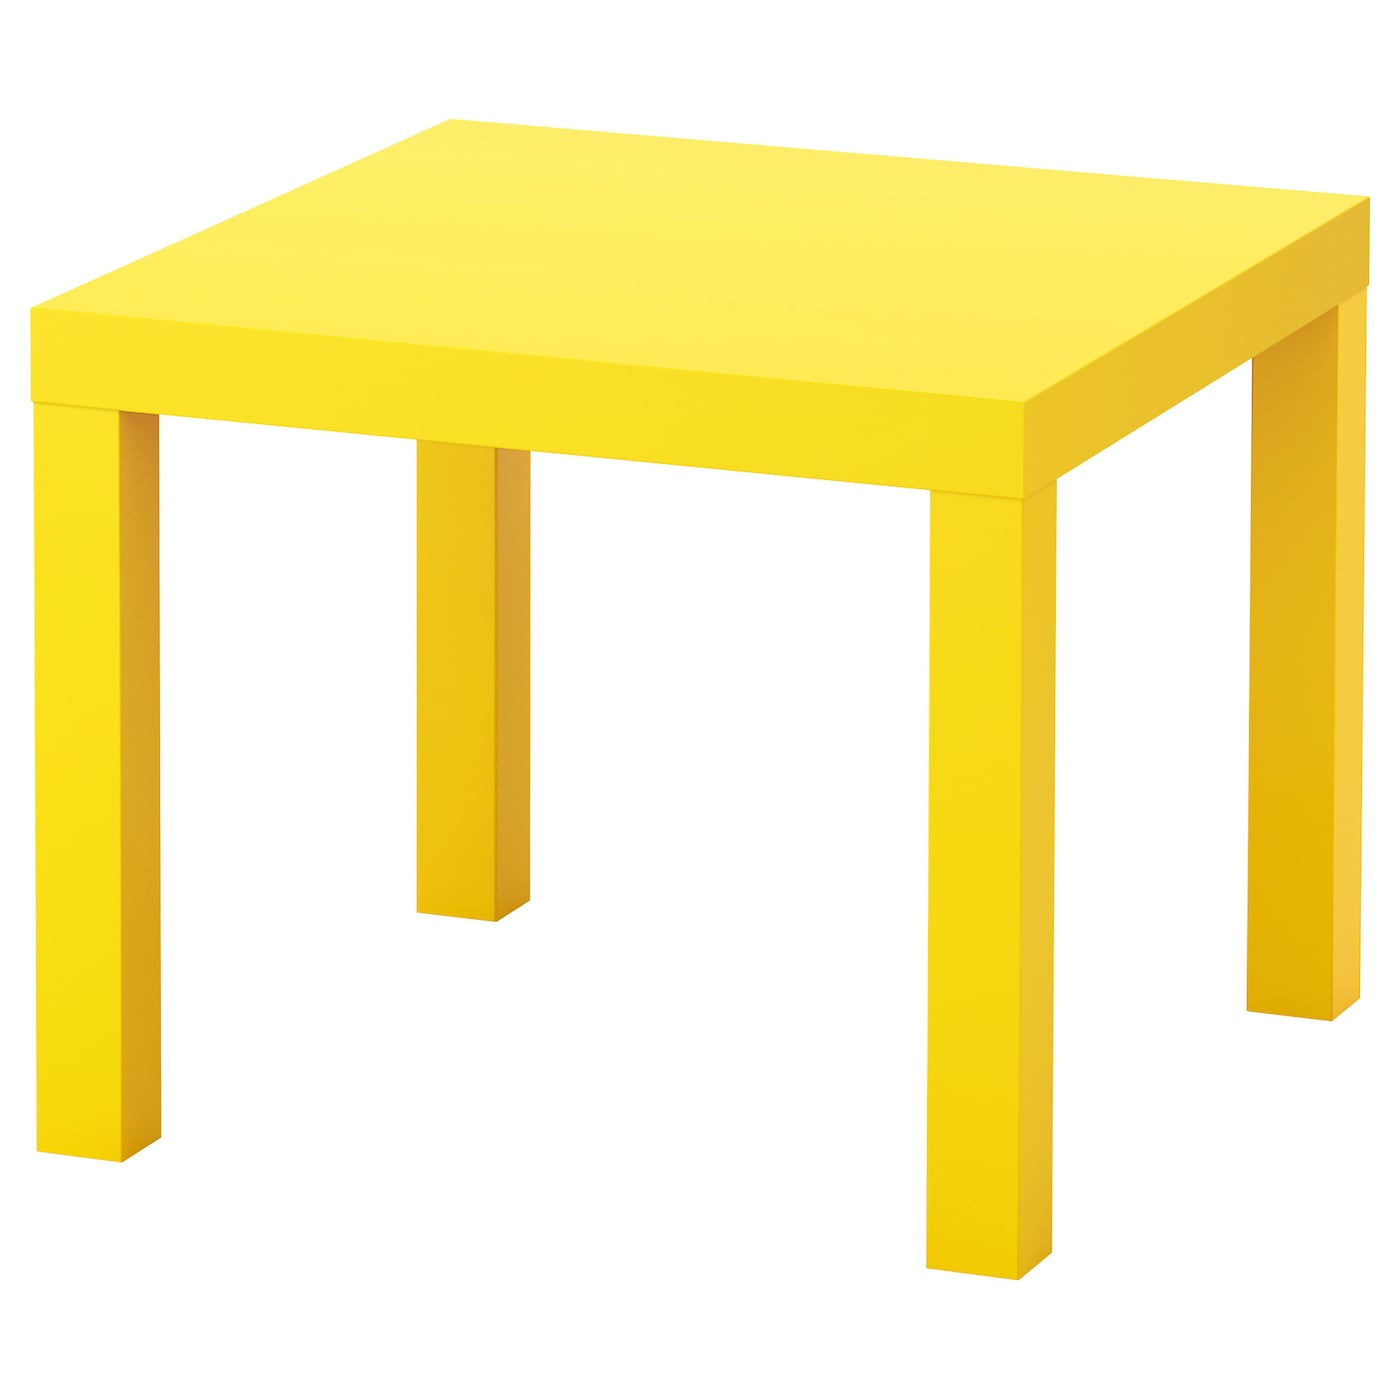 lack side table yellow 55x55 cm ikea. Black Bedroom Furniture Sets. Home Design Ideas